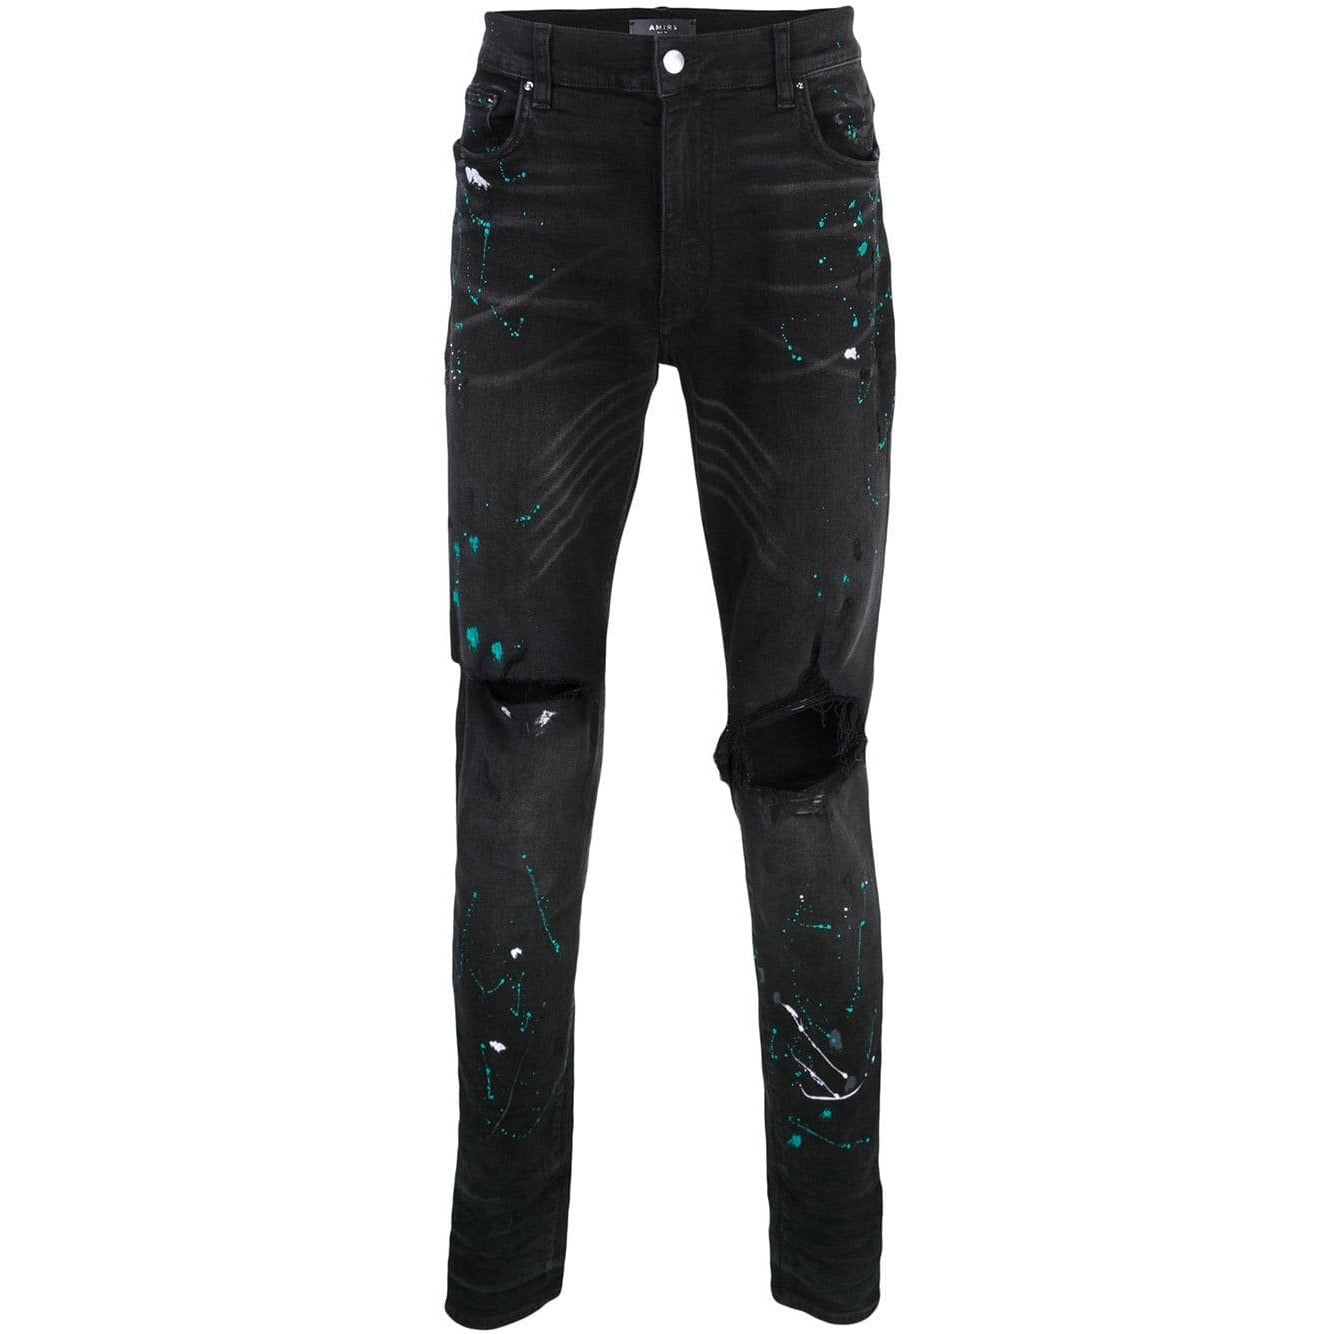 Amiri Paint Splatter Jeans (Black)